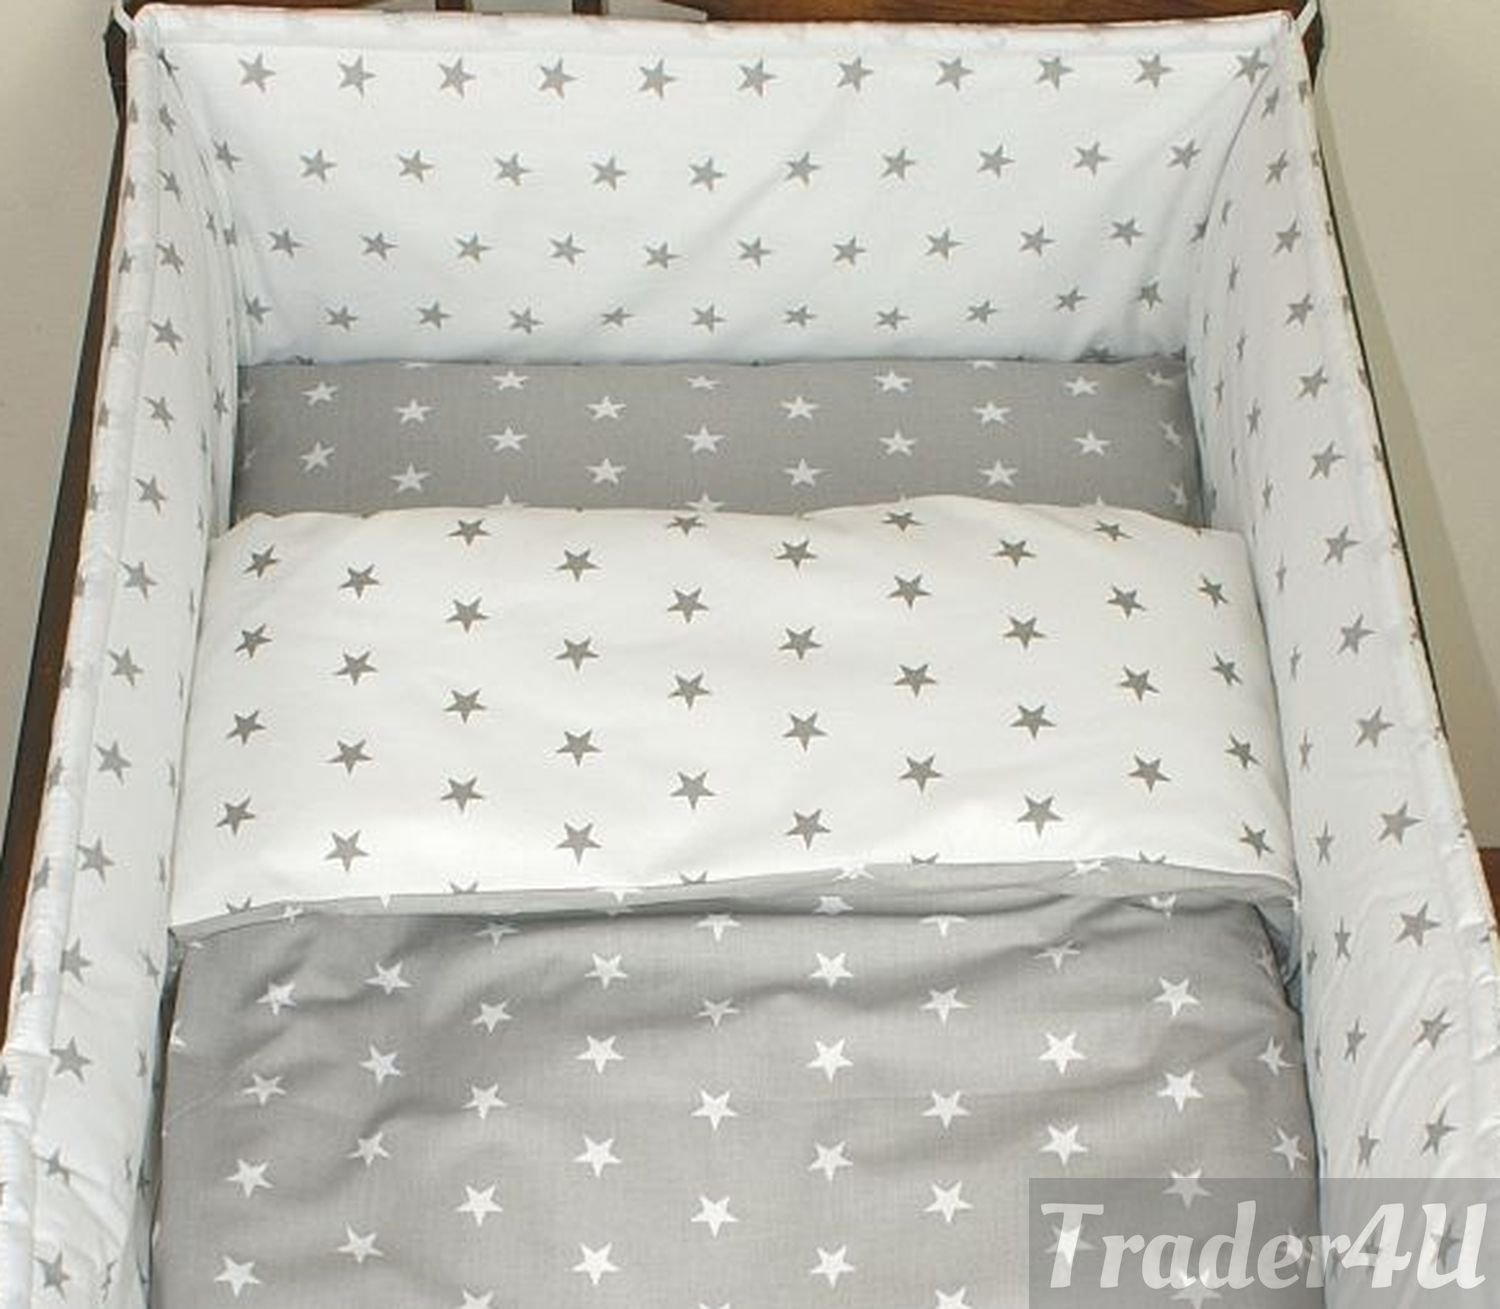 MillaLu 3 Pcs Baby Nursery Bedding Set fit to Cot 120x60cm or Cot Bed 140x70cm Padded Bumper Fit to Cot Bed 140x70 cm, Navy Stars on White